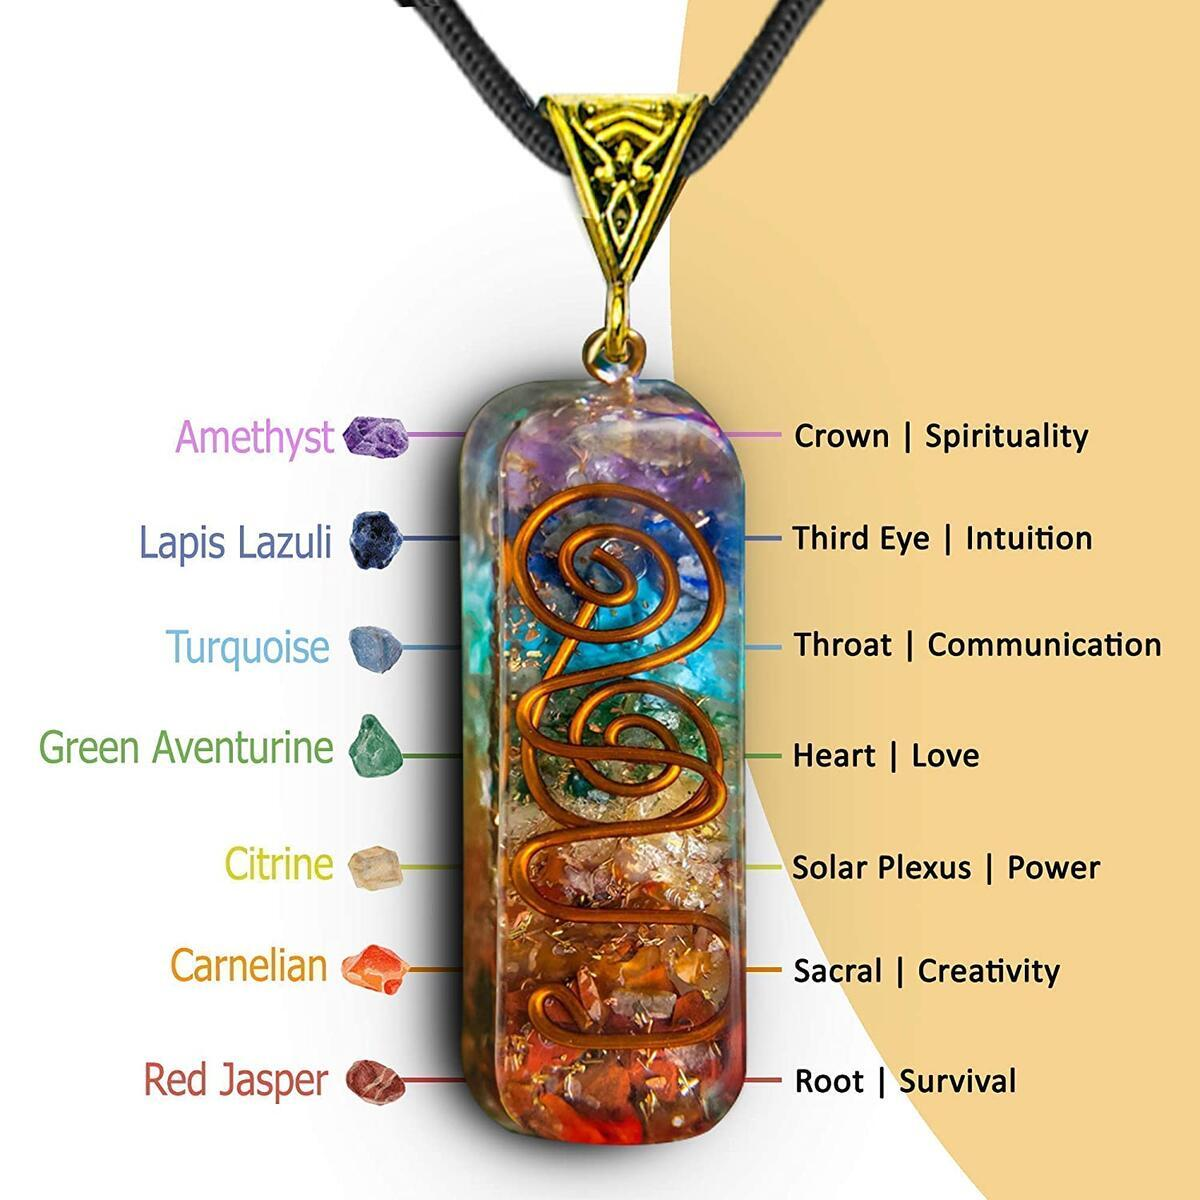 Seven Chakra Stones Energy Generator Handmade Healing Pendant Crystal Necklaces with Adjustable Cord for EMF Protection, Stress, Anxiety, Meditation, Spiritual Gift Jewelry